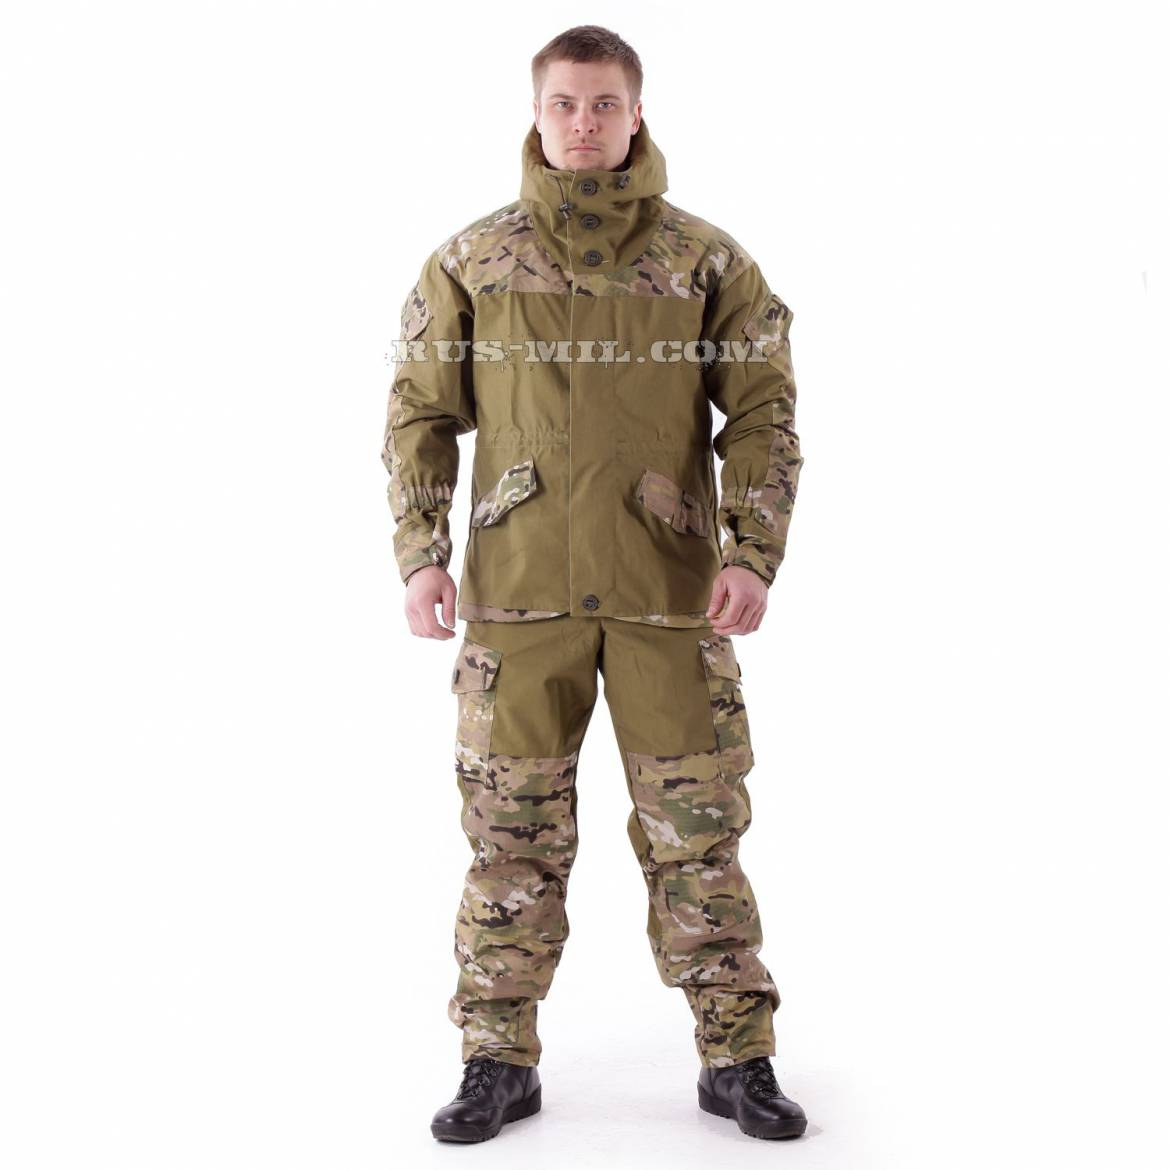 buy-Gorka-3-Khaki-colour-with-pads-in-Multicam.jpg